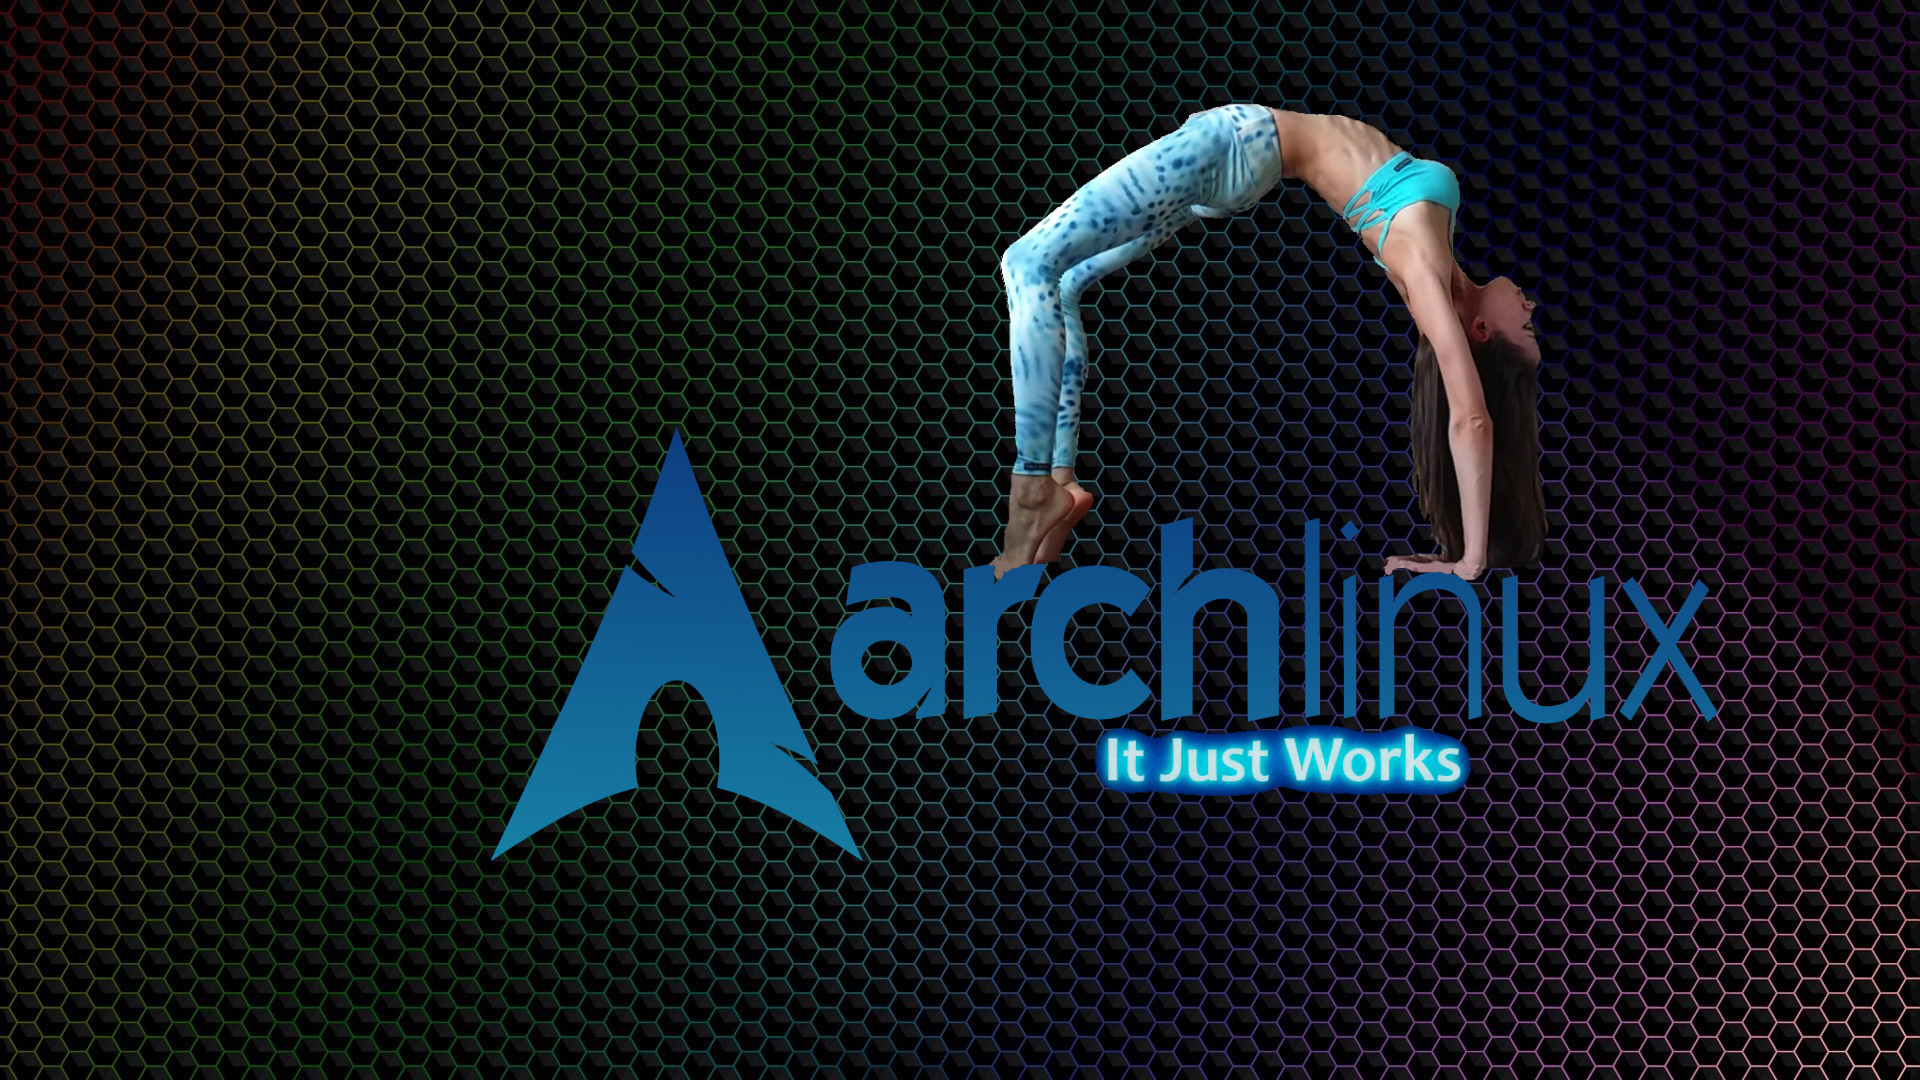 Vertical Full Hd Wallpapers Arch Linux Wallpaper 86 Images